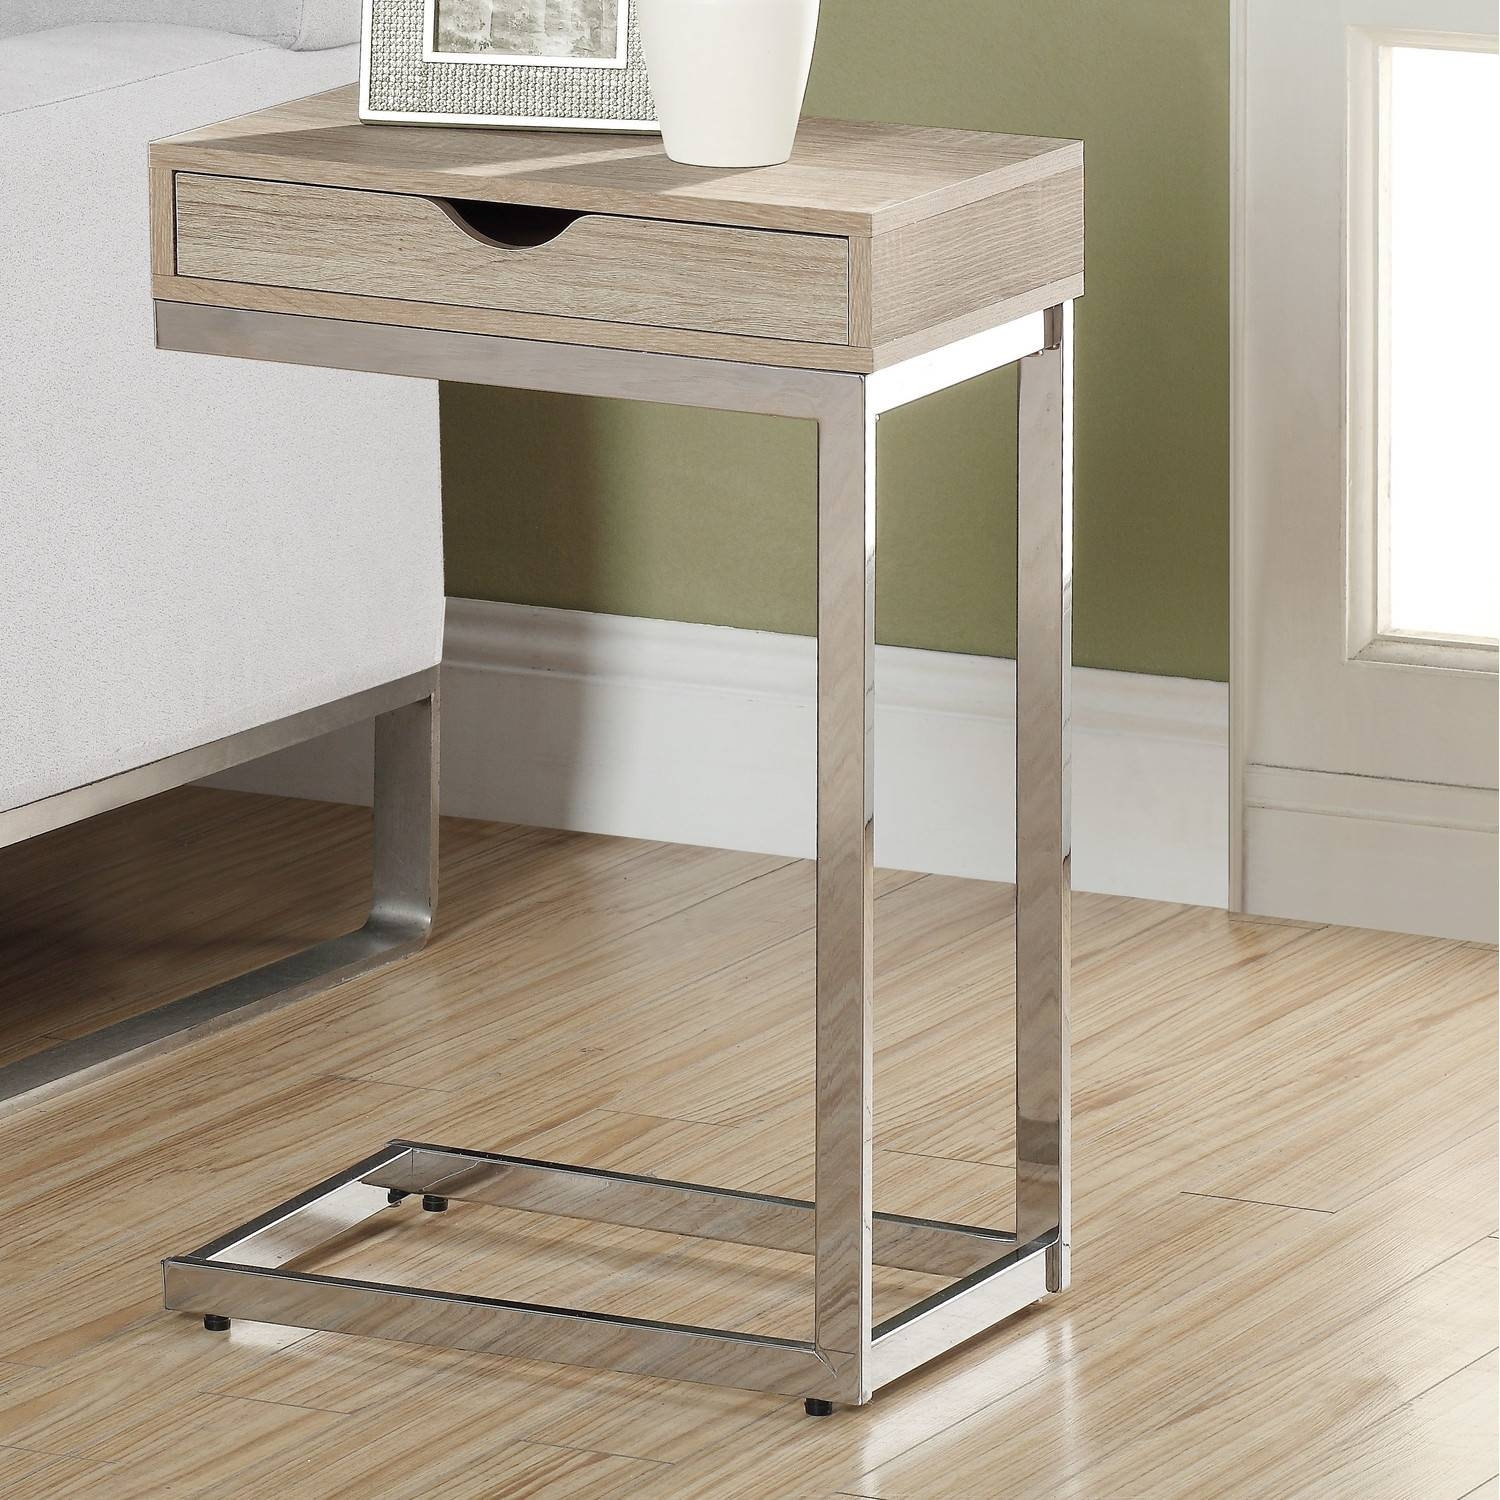 Sofa Table Design: Slide Under Sofa Tray Table Affordable Modern with Under Sofa Tray Tables (Image 12 of 15)